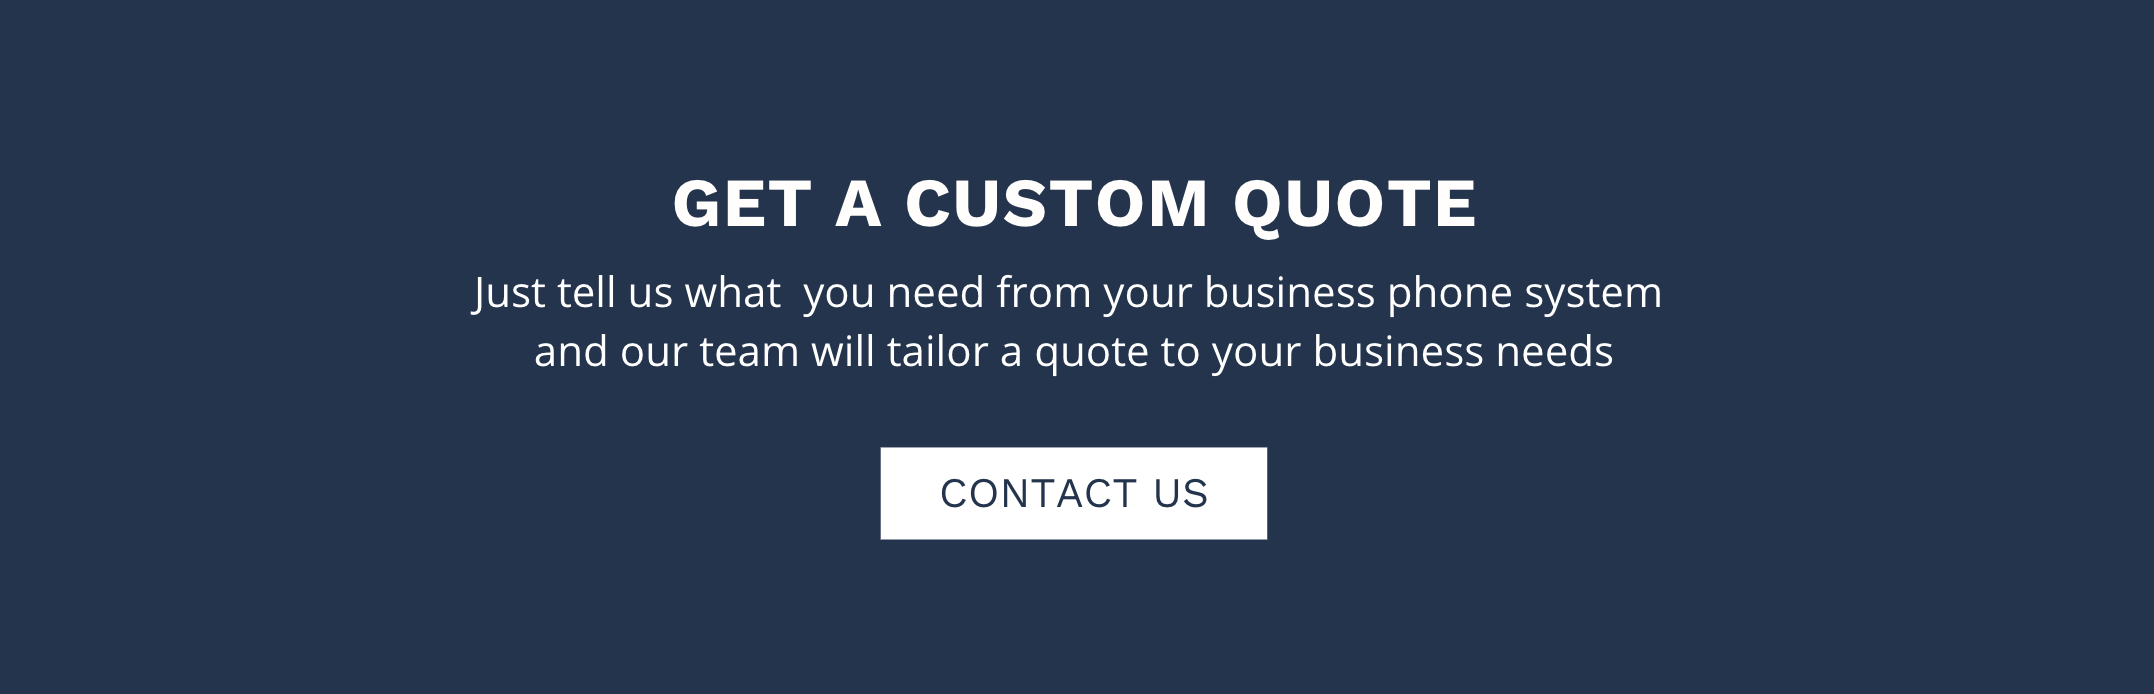 Contact benemen for a business phone system quote